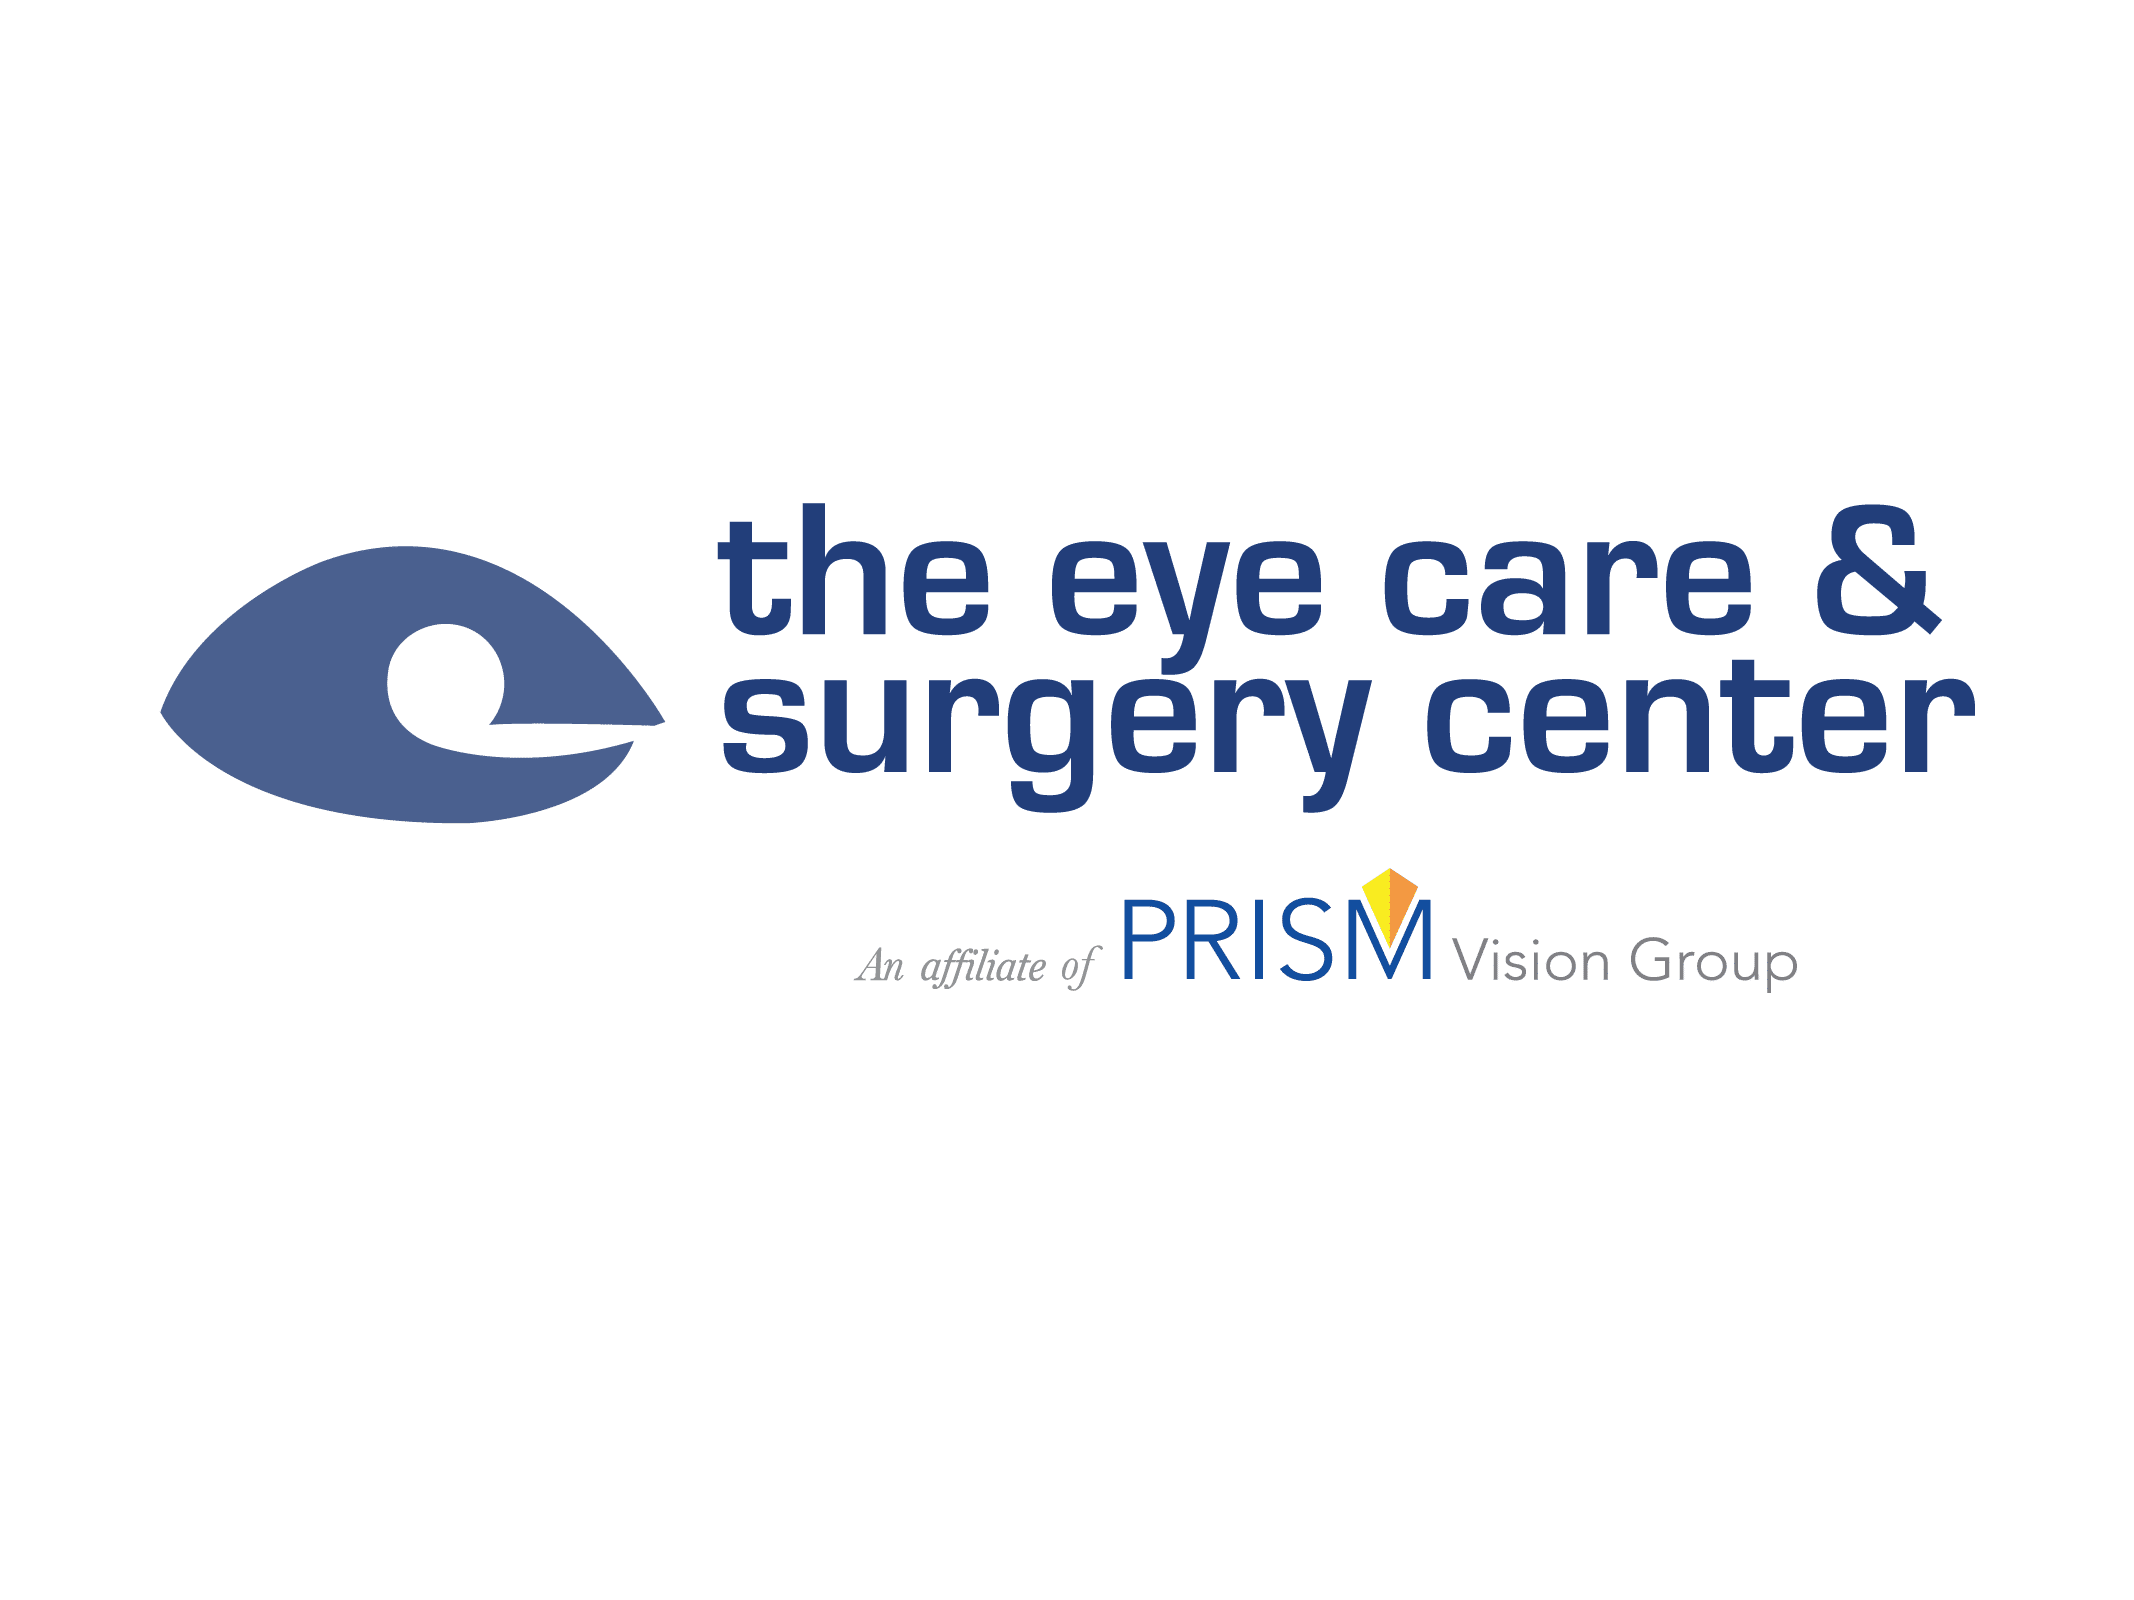 The Eye Care & Surgery Center logo